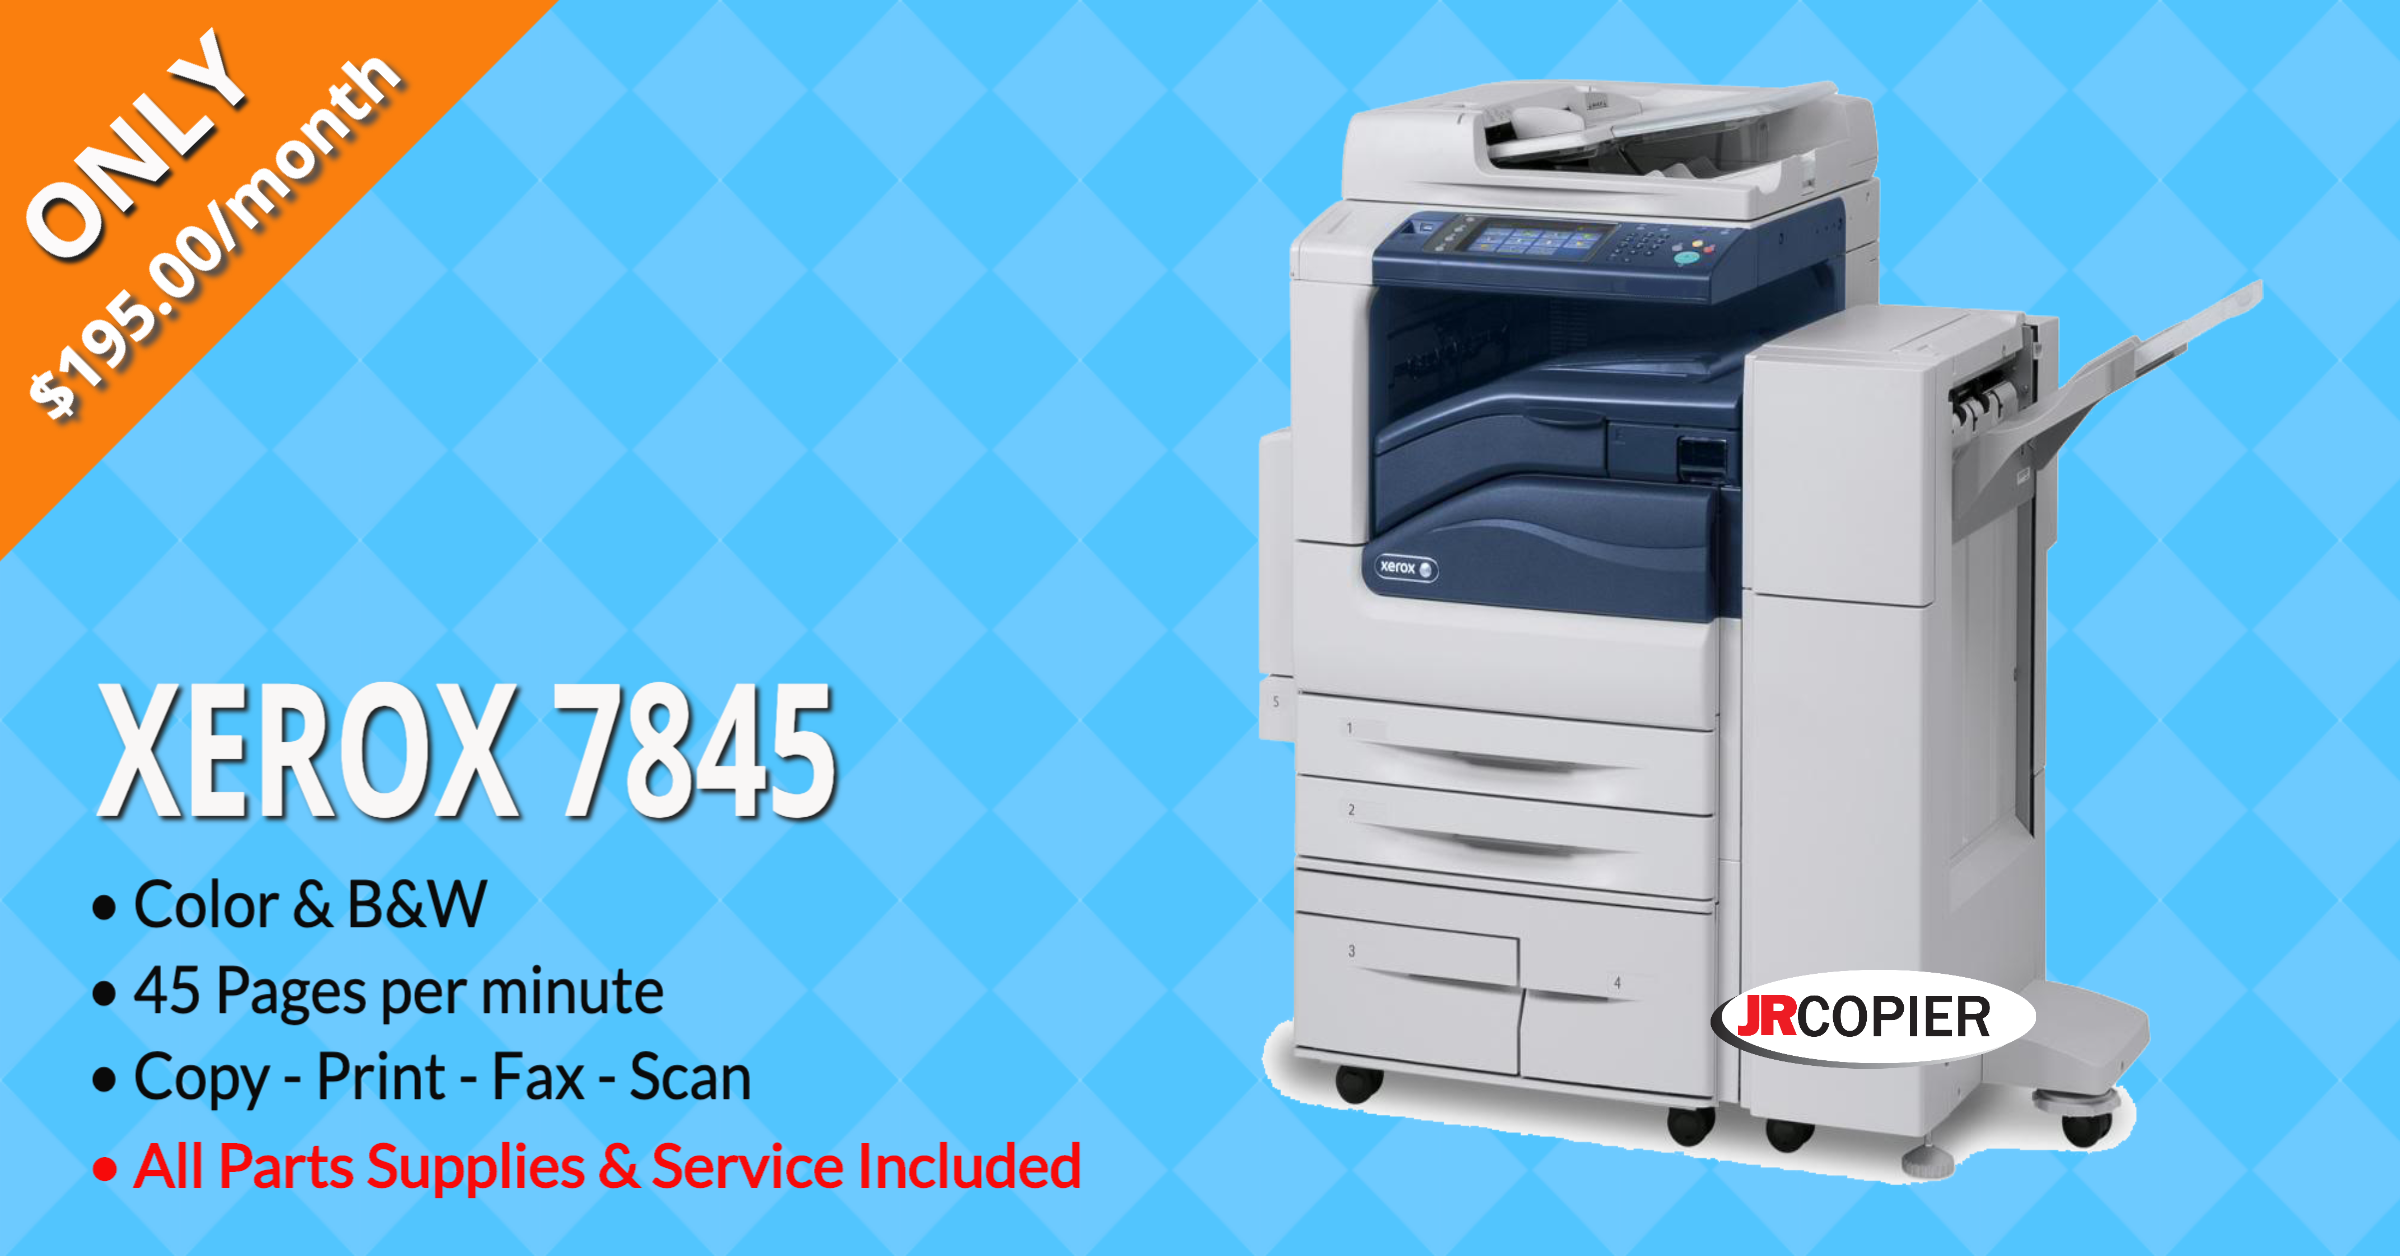 Printer Leasing Company 48331, 48332, 48333, 48334, 48335, 48336